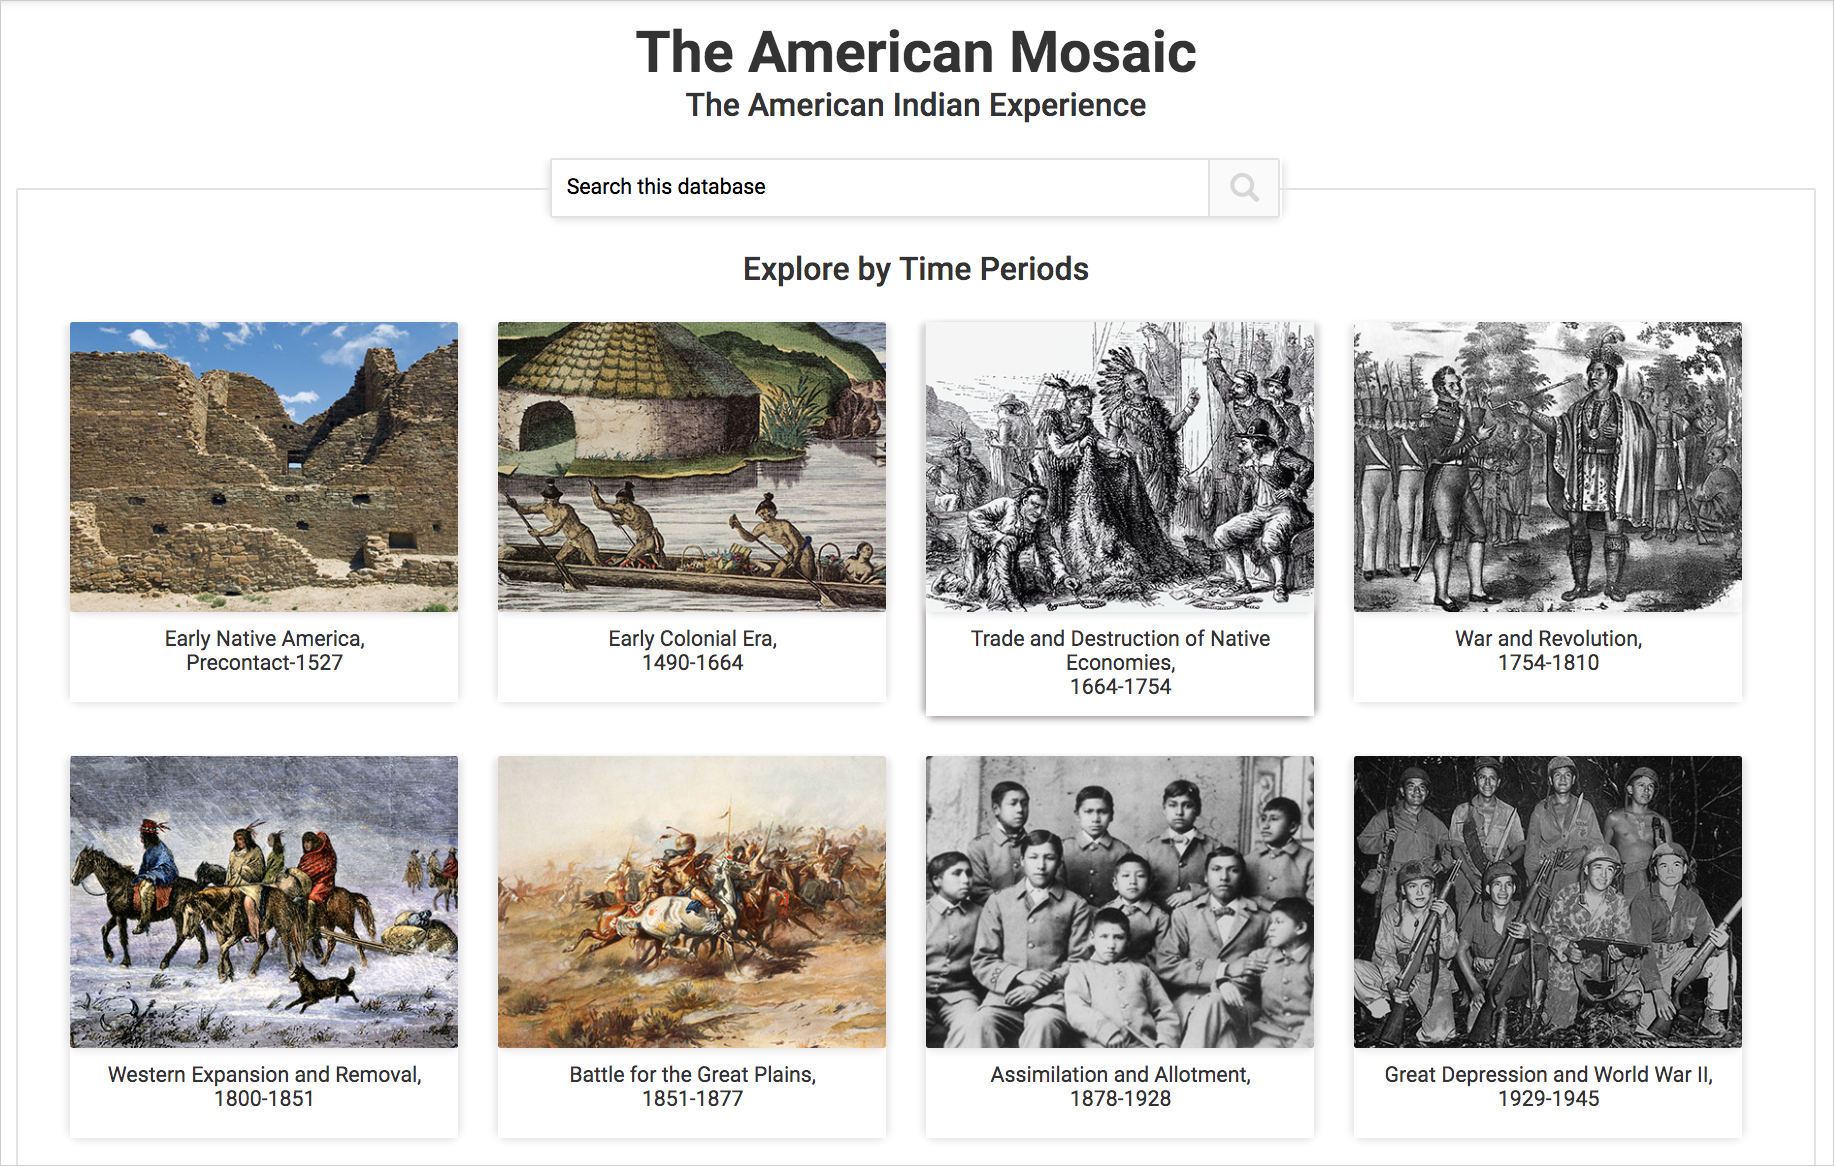 The American Indian Experience: The American Mosaic - ABC